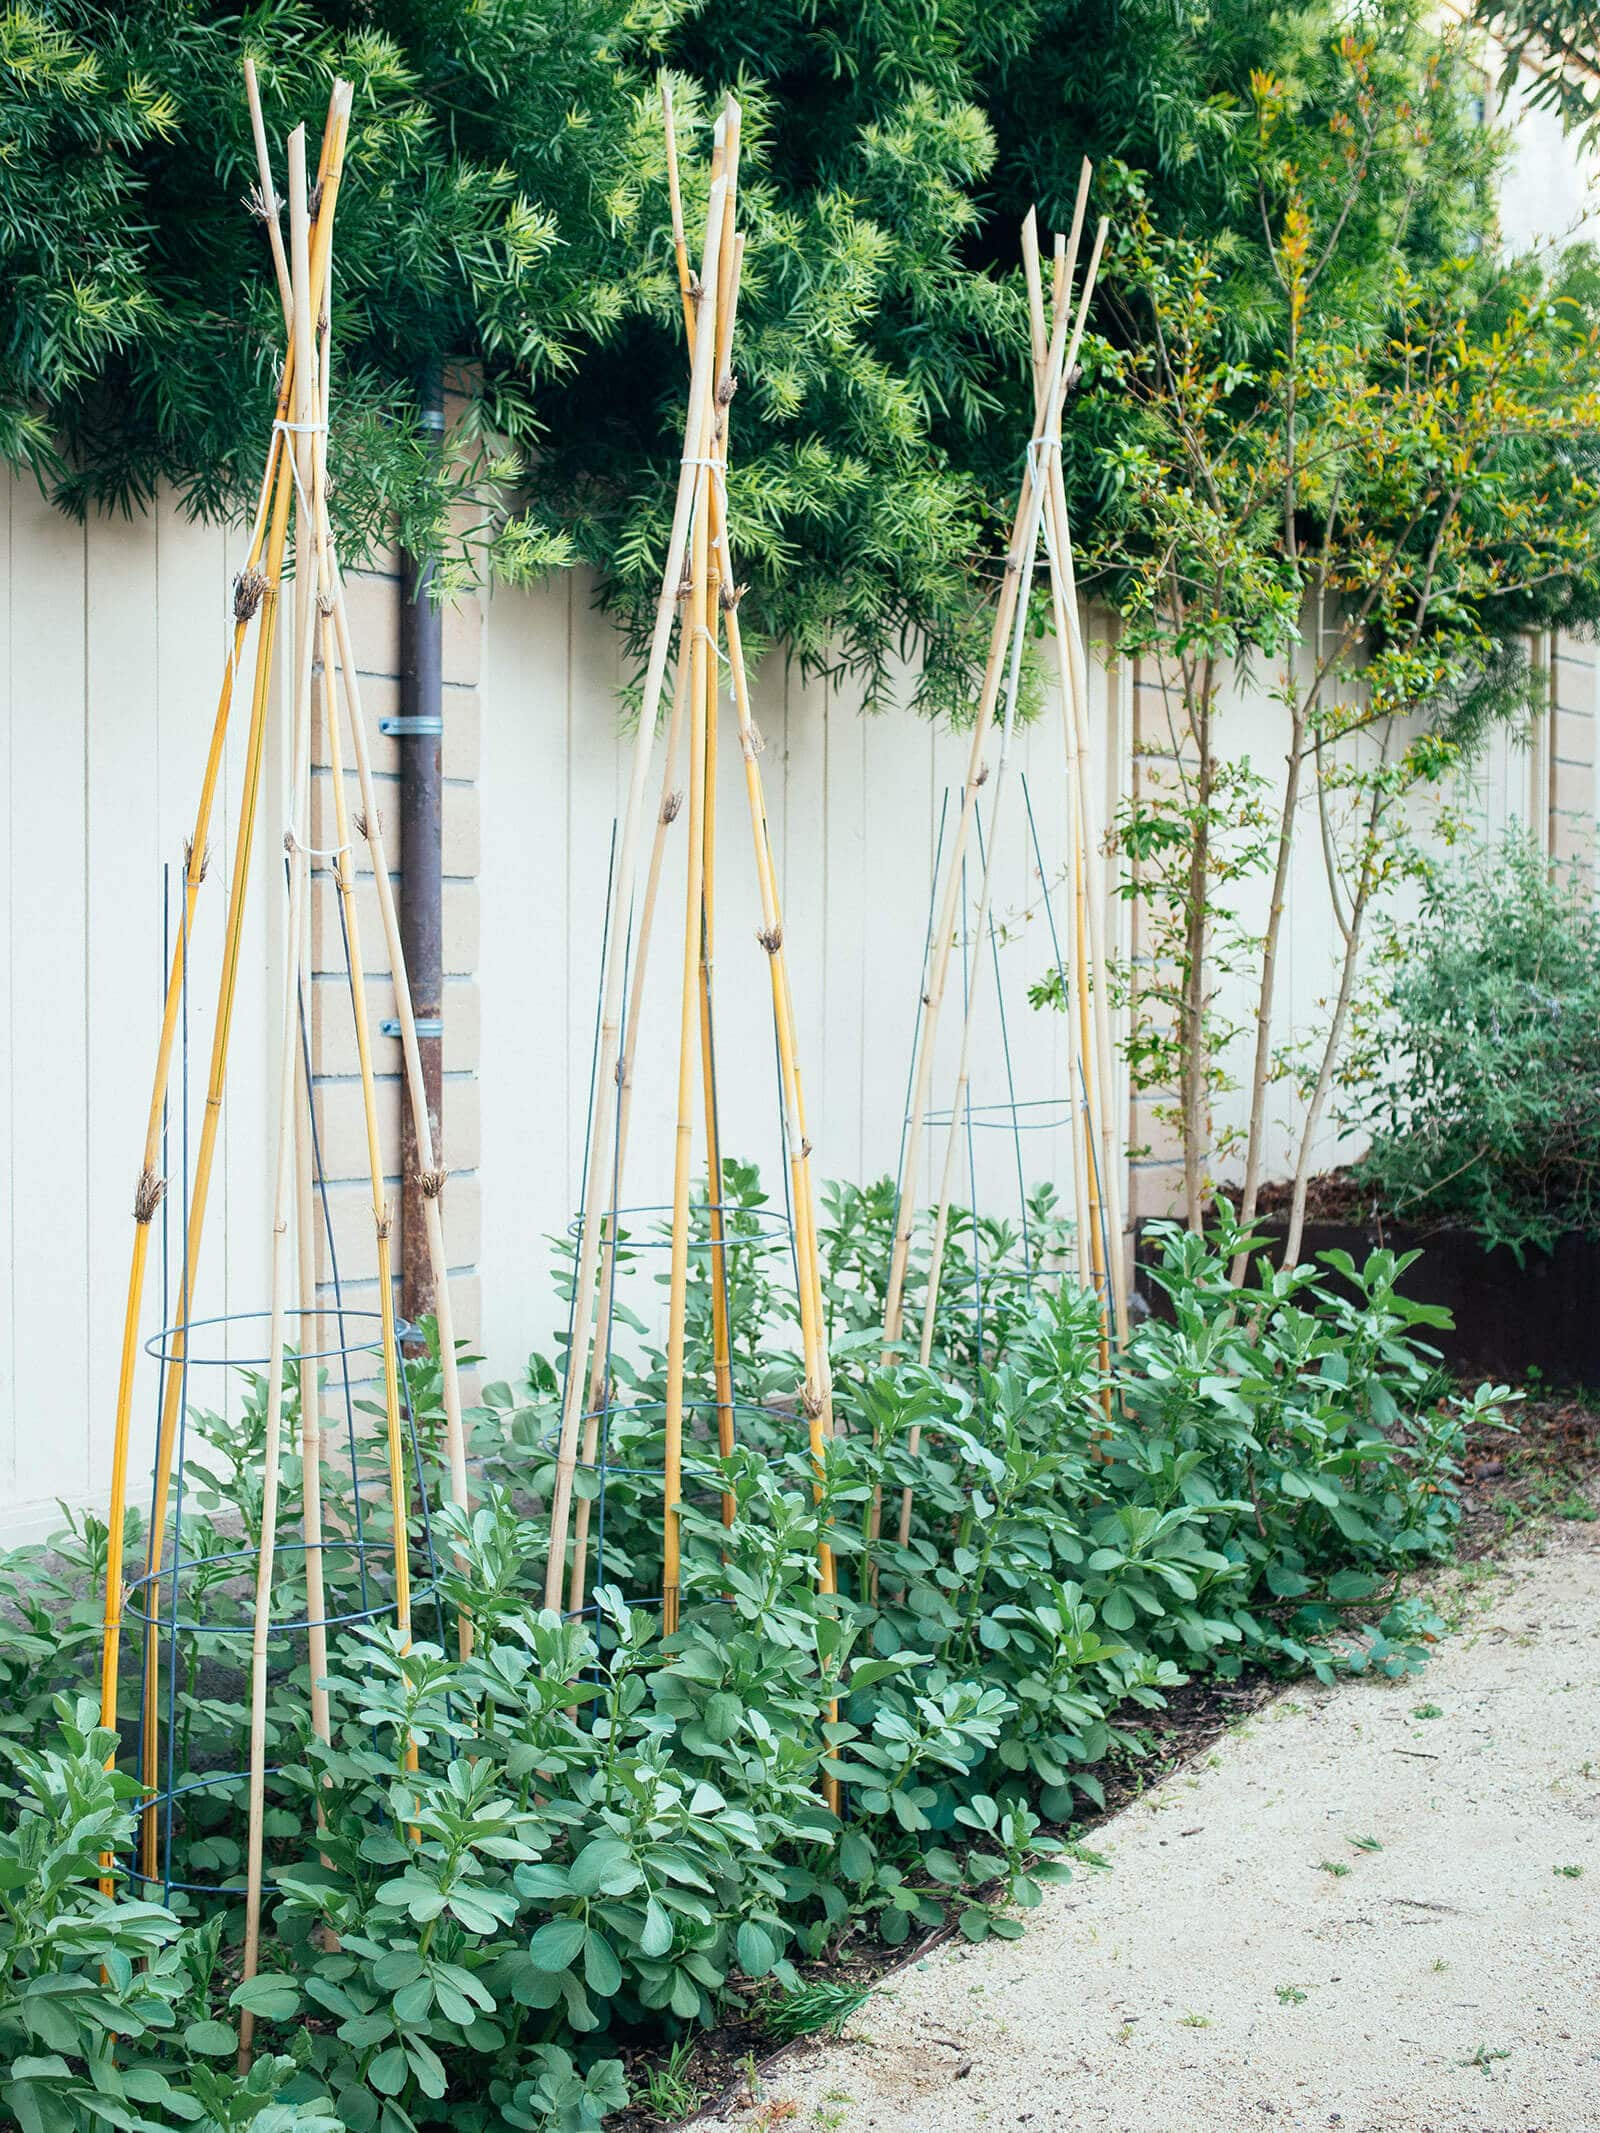 A row of fava bean plants supported with wire tomato cages and bamboo teepees